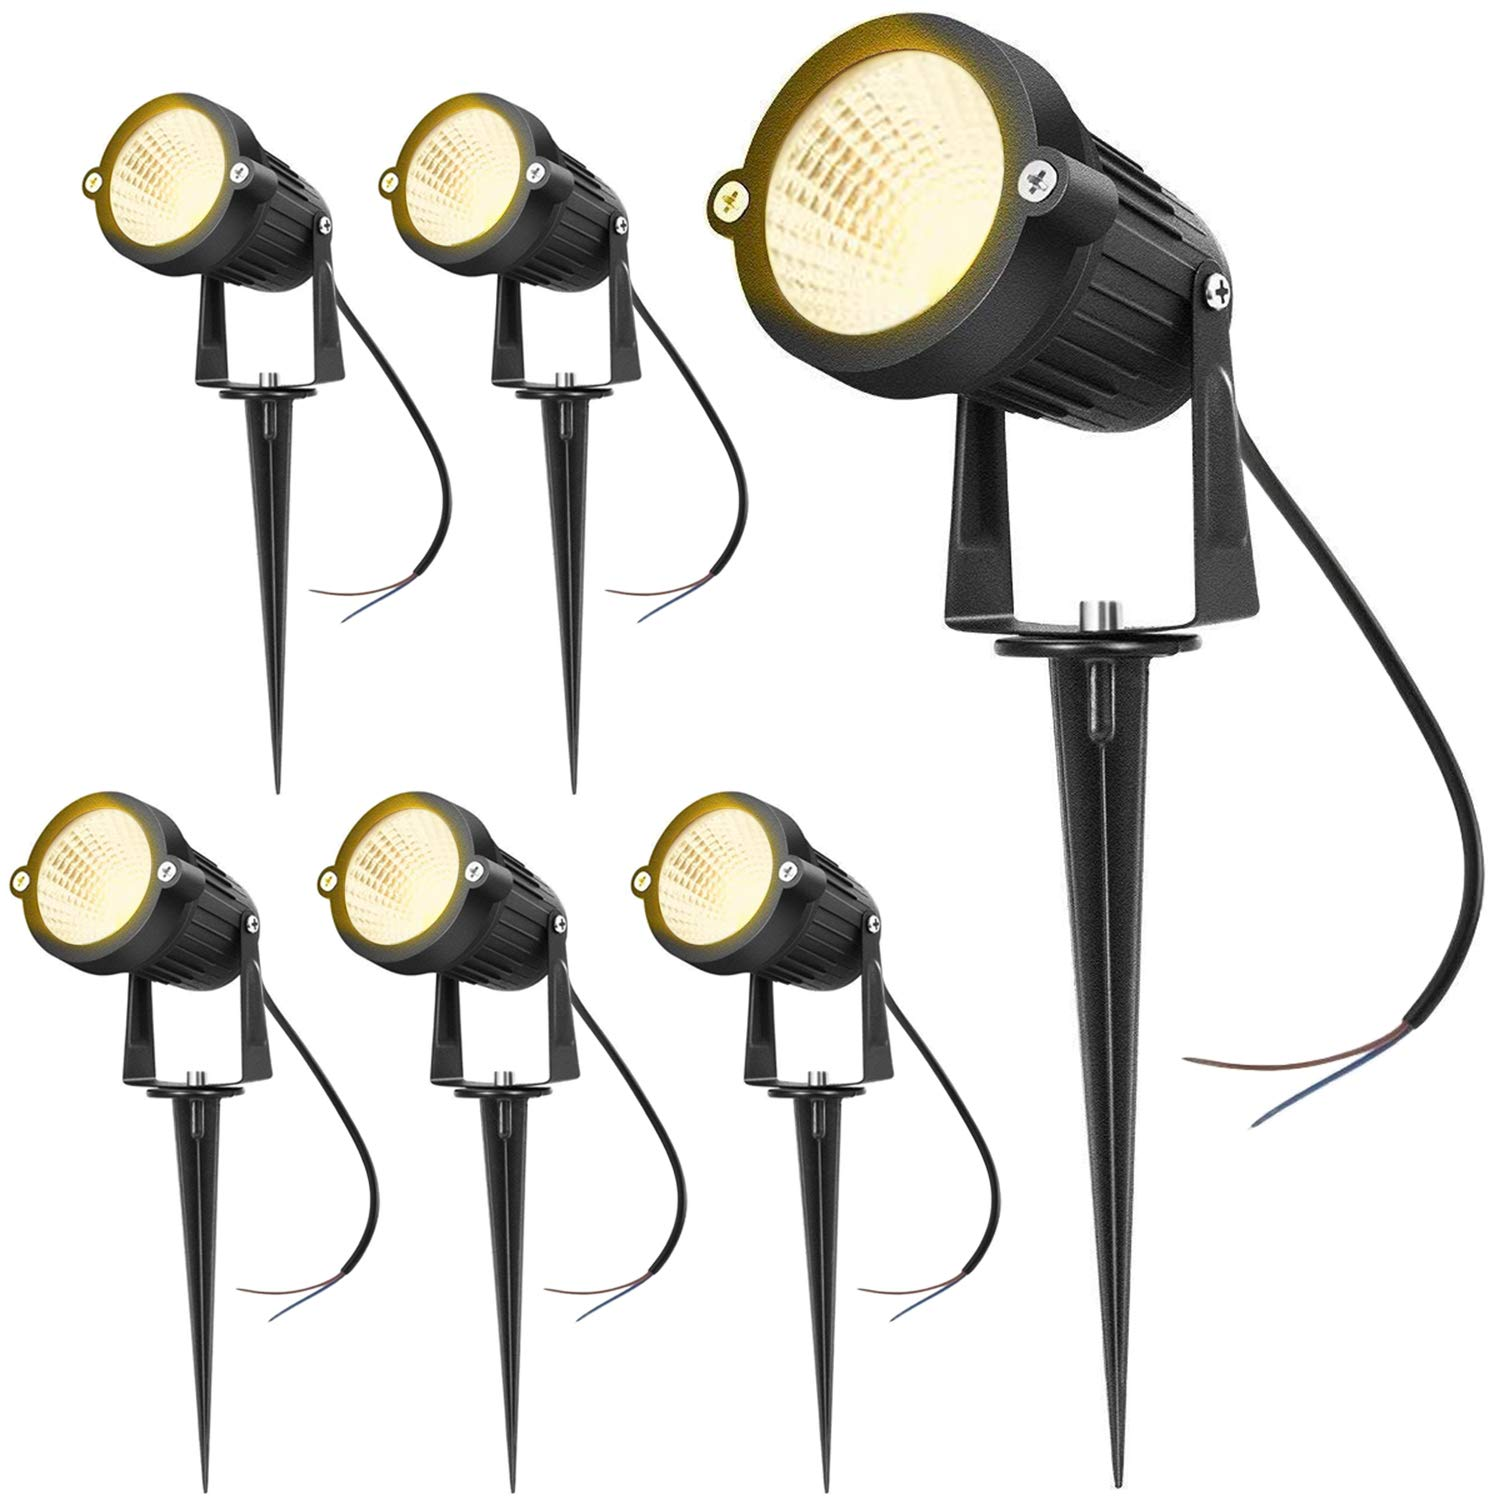 Hypergiant 12W LED Landscape Lights Low Voltage (AC/DC 12V) Waterproof Garden Yard Path Lights Super Warm White(850LM) Walls Trees Flags Outdoor Spotlights with Spike Stand (6 Pack) by Hypergiant